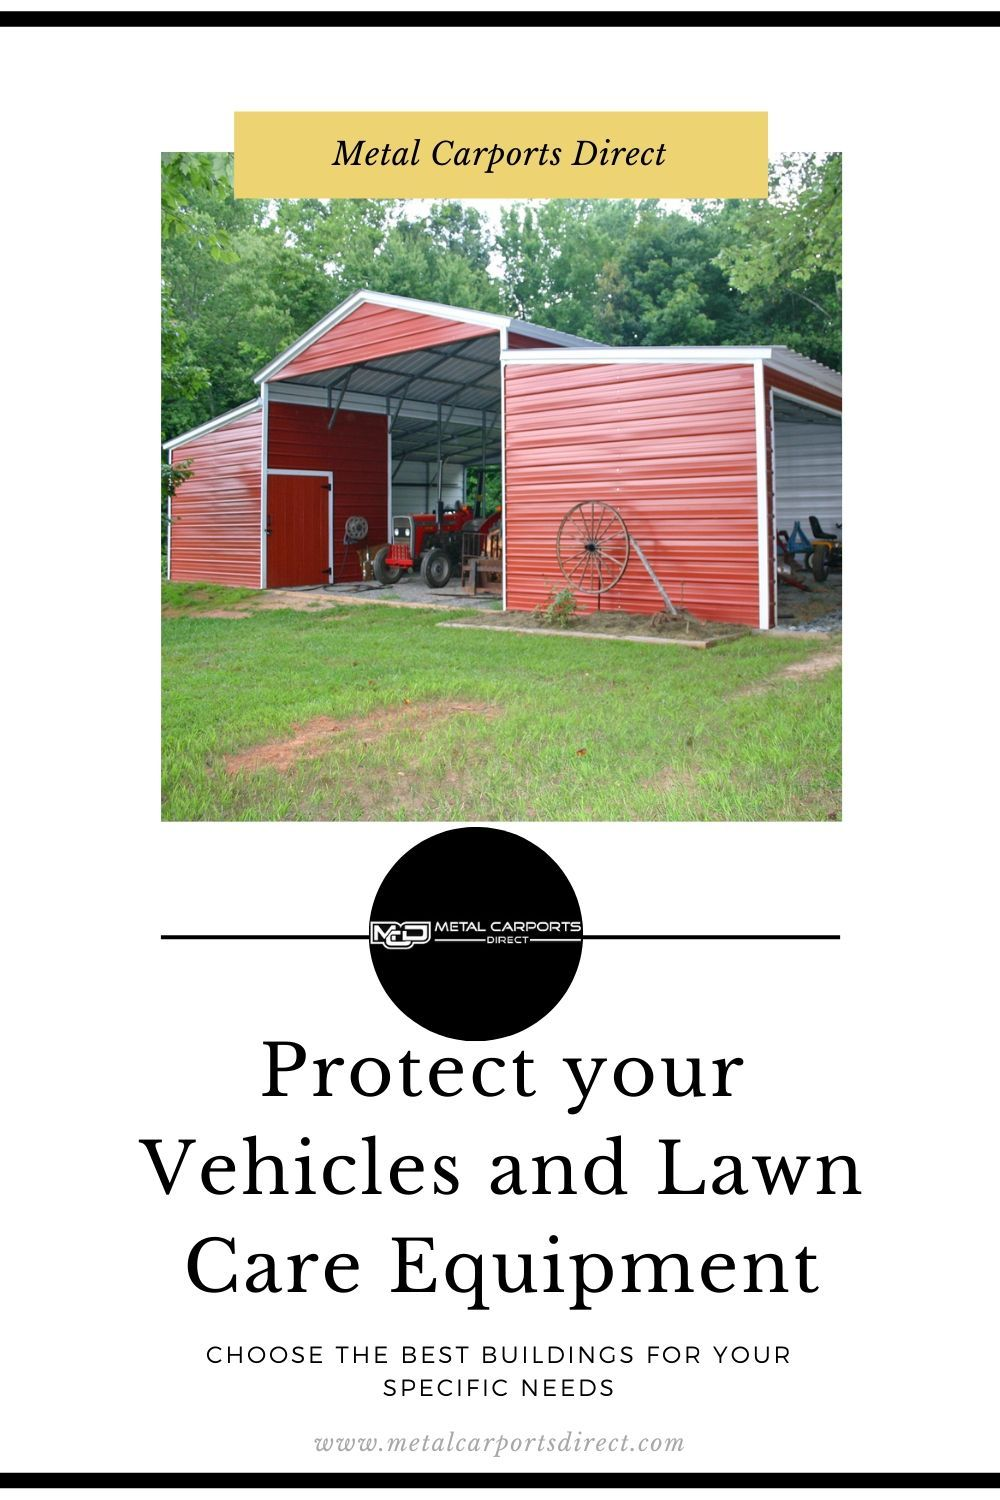 Protect your car, SUV and lawn care equipment with our